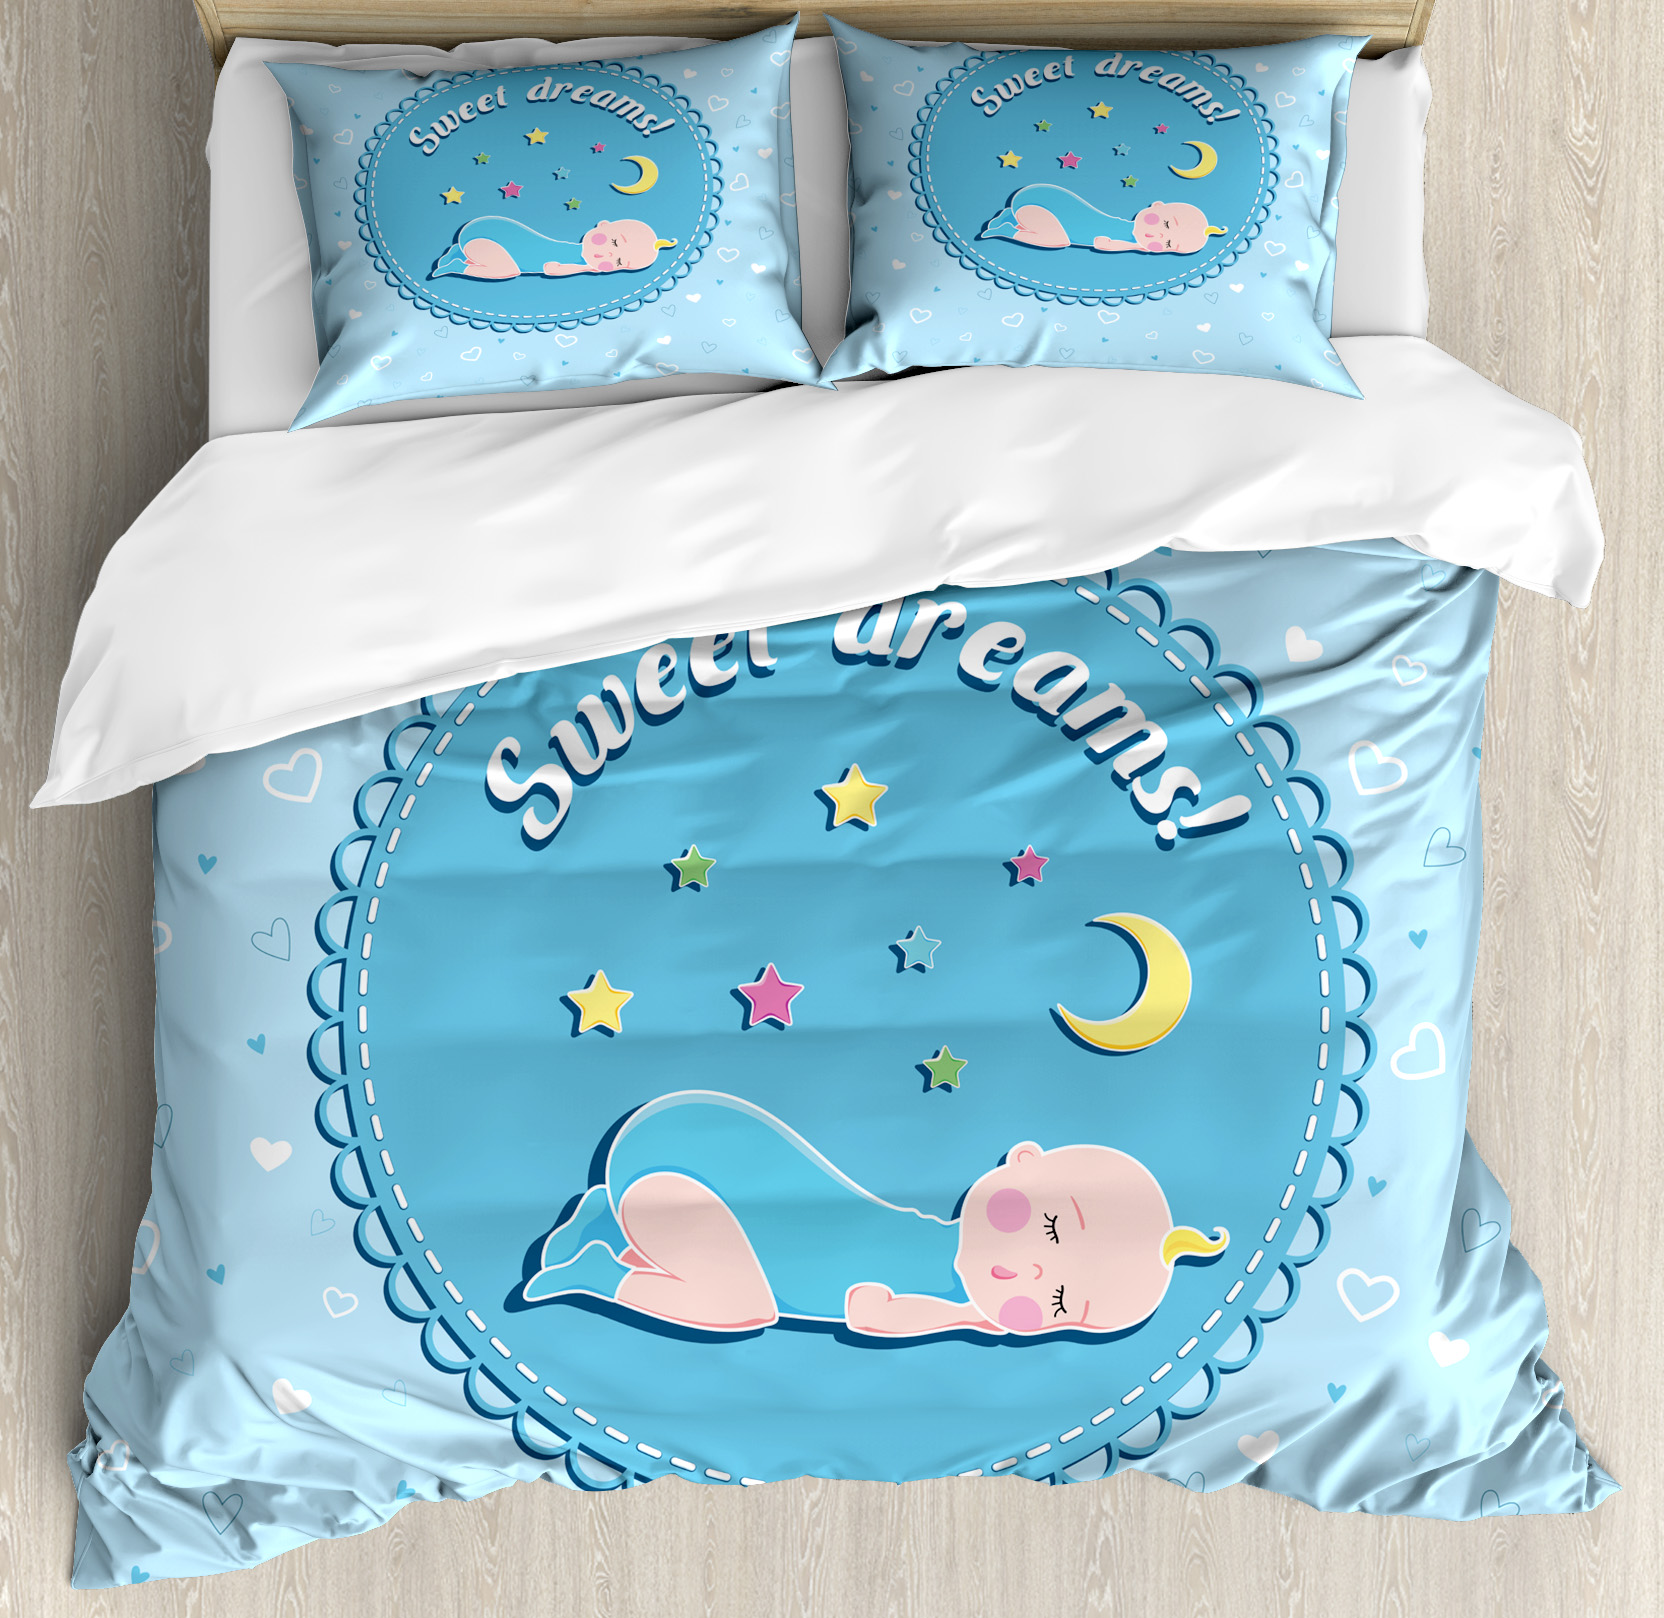 Sweet Dreams Queen Size Duvet Cover Set, Newborn Baby Sleeping with Colorful Stars and Moon on Heart Filled... by Kozmos